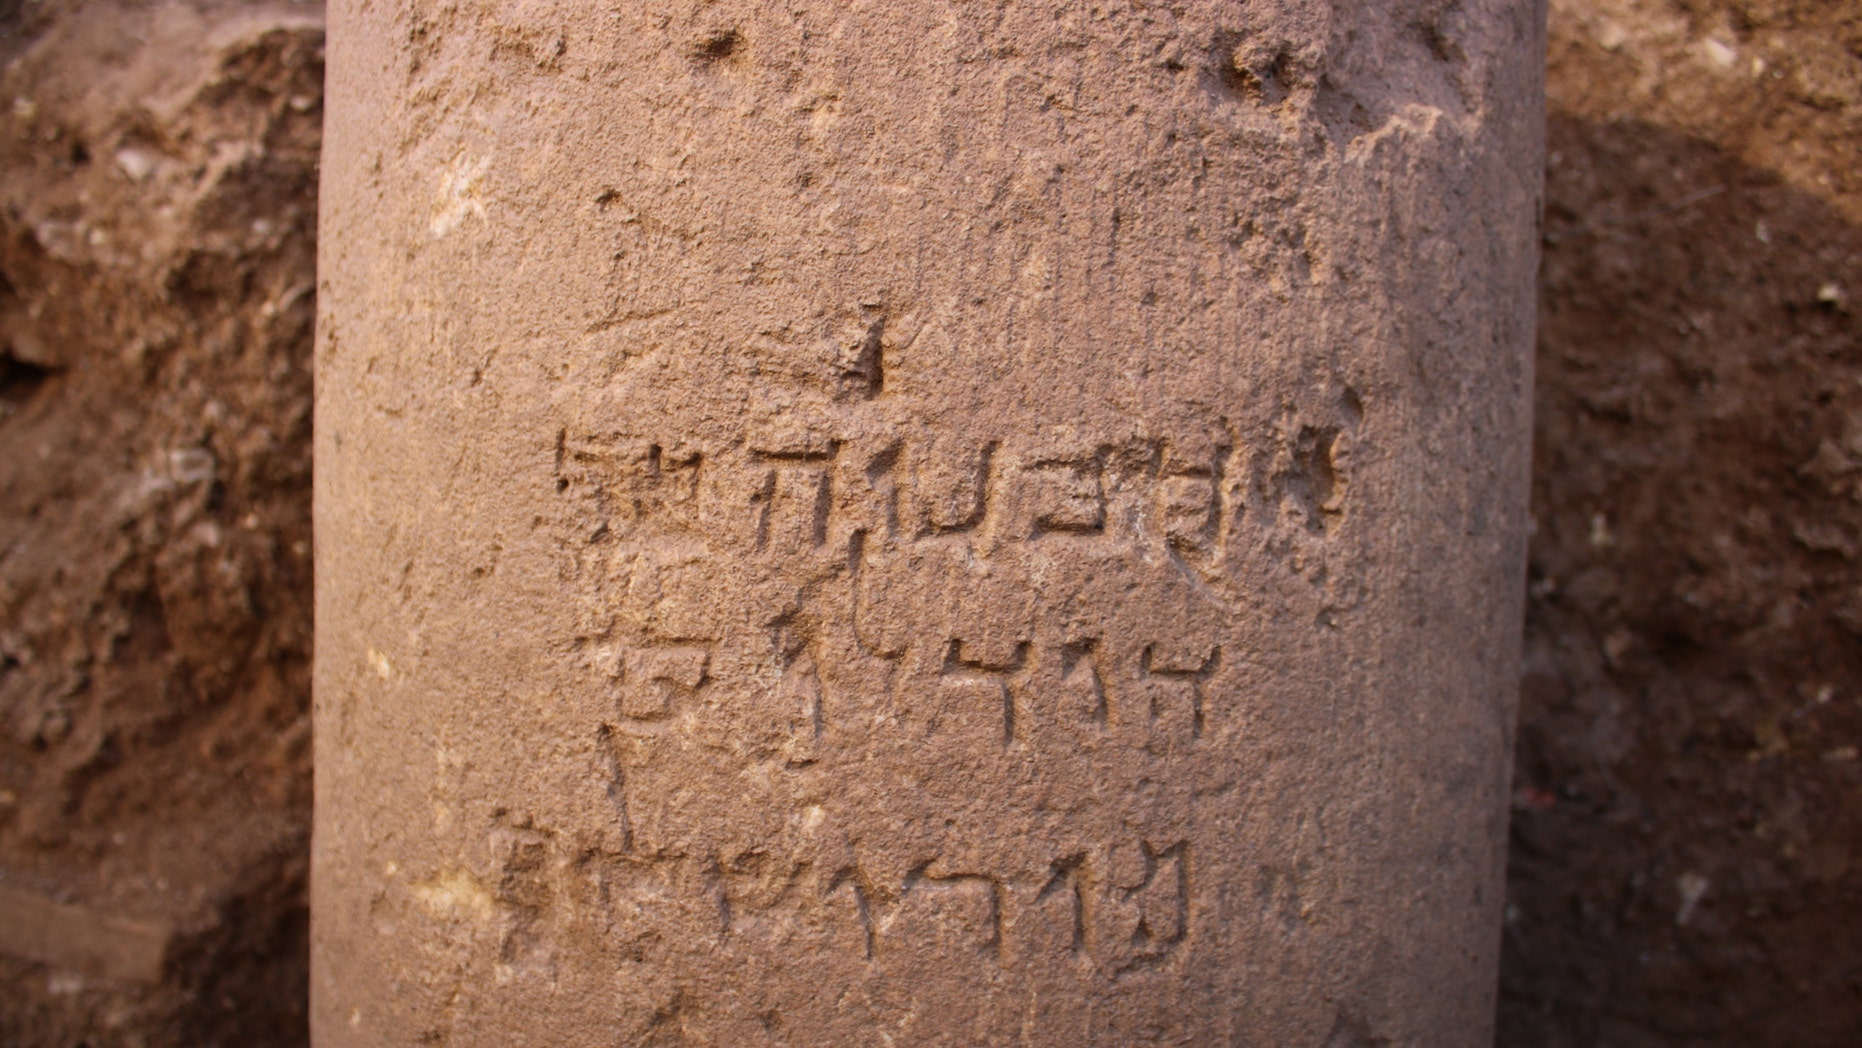 )The Inscription as it was found in the excavation. (Photo: Danit Levy, Israel Antiquities Authority)